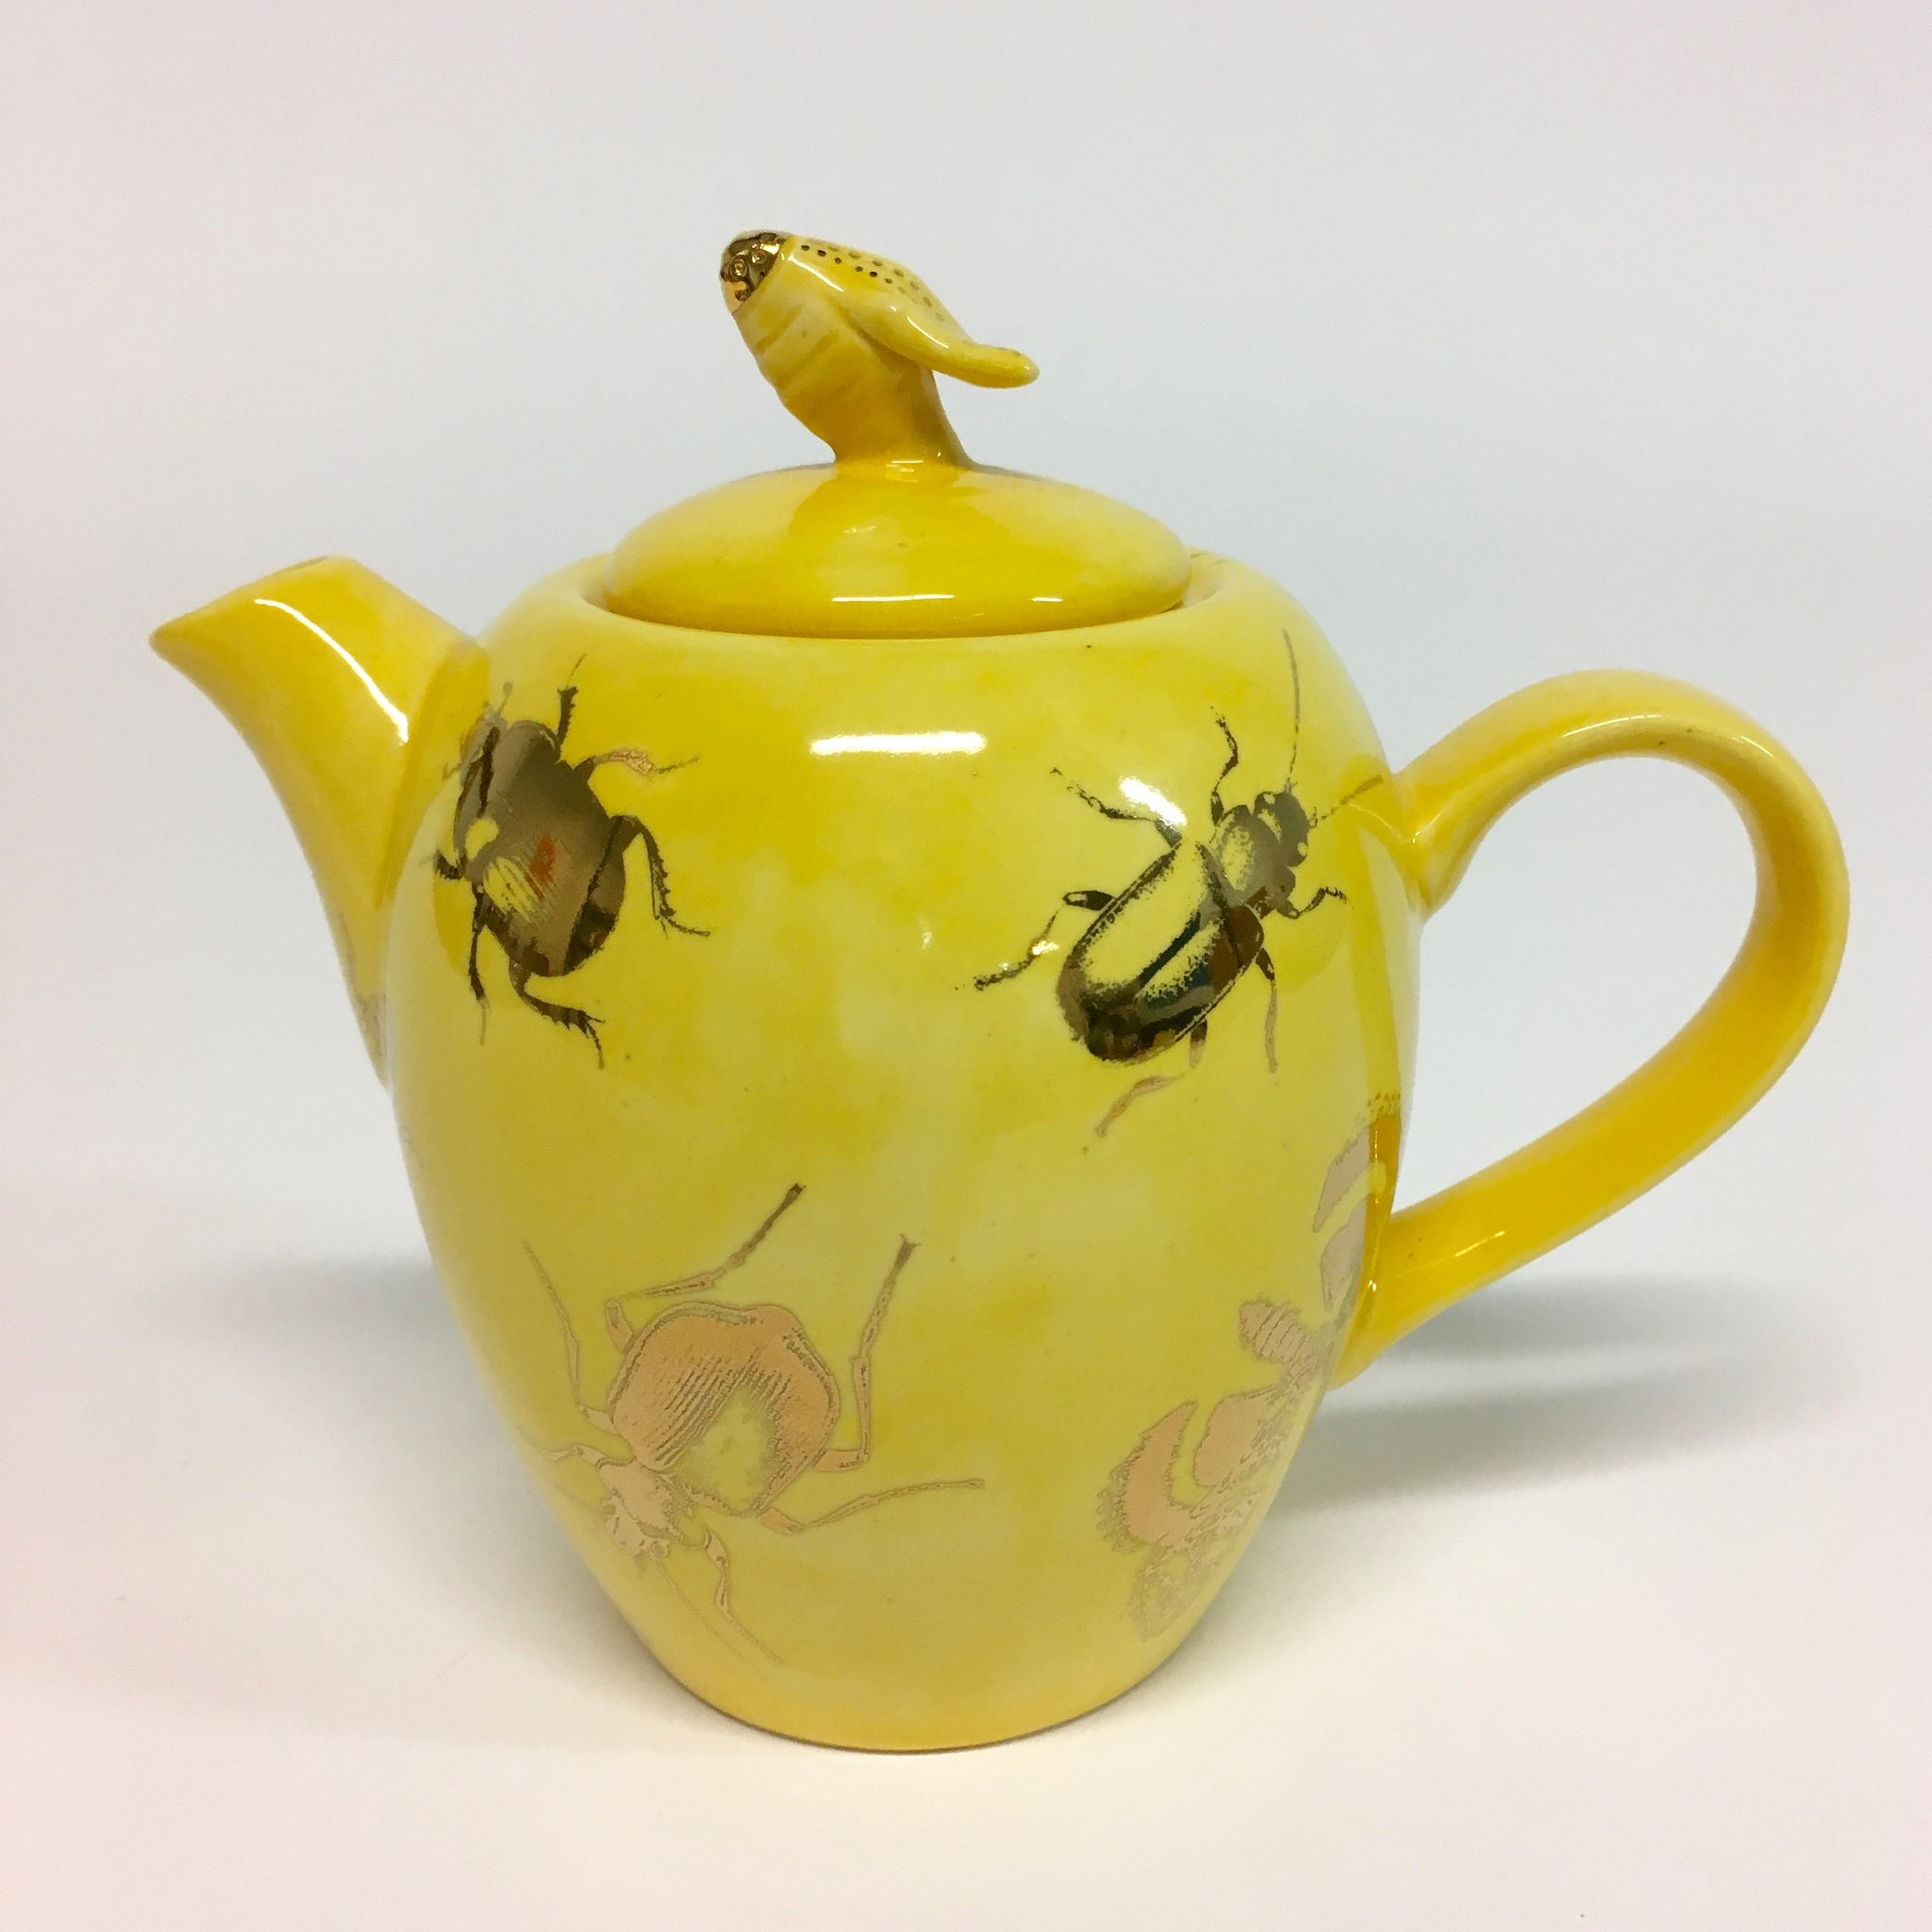 A small dandelion yellow teapot